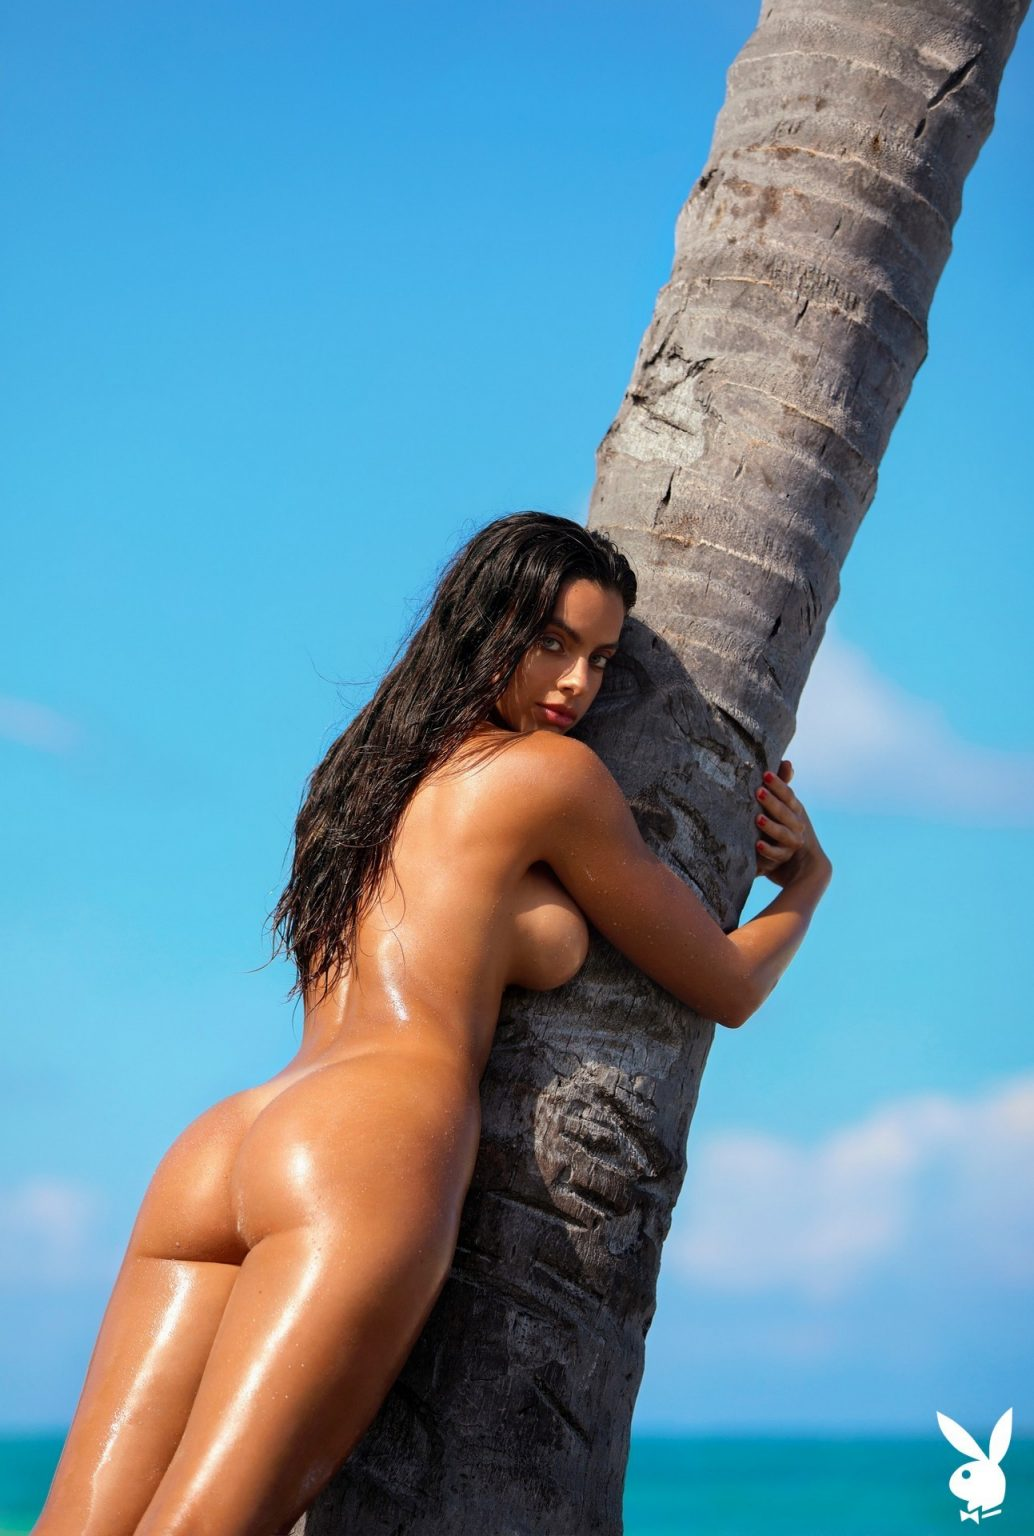 Priscilla-Huggins-Nude-Content-By-Ana-Dias-The-Fappening-Pro-20-1034x1536